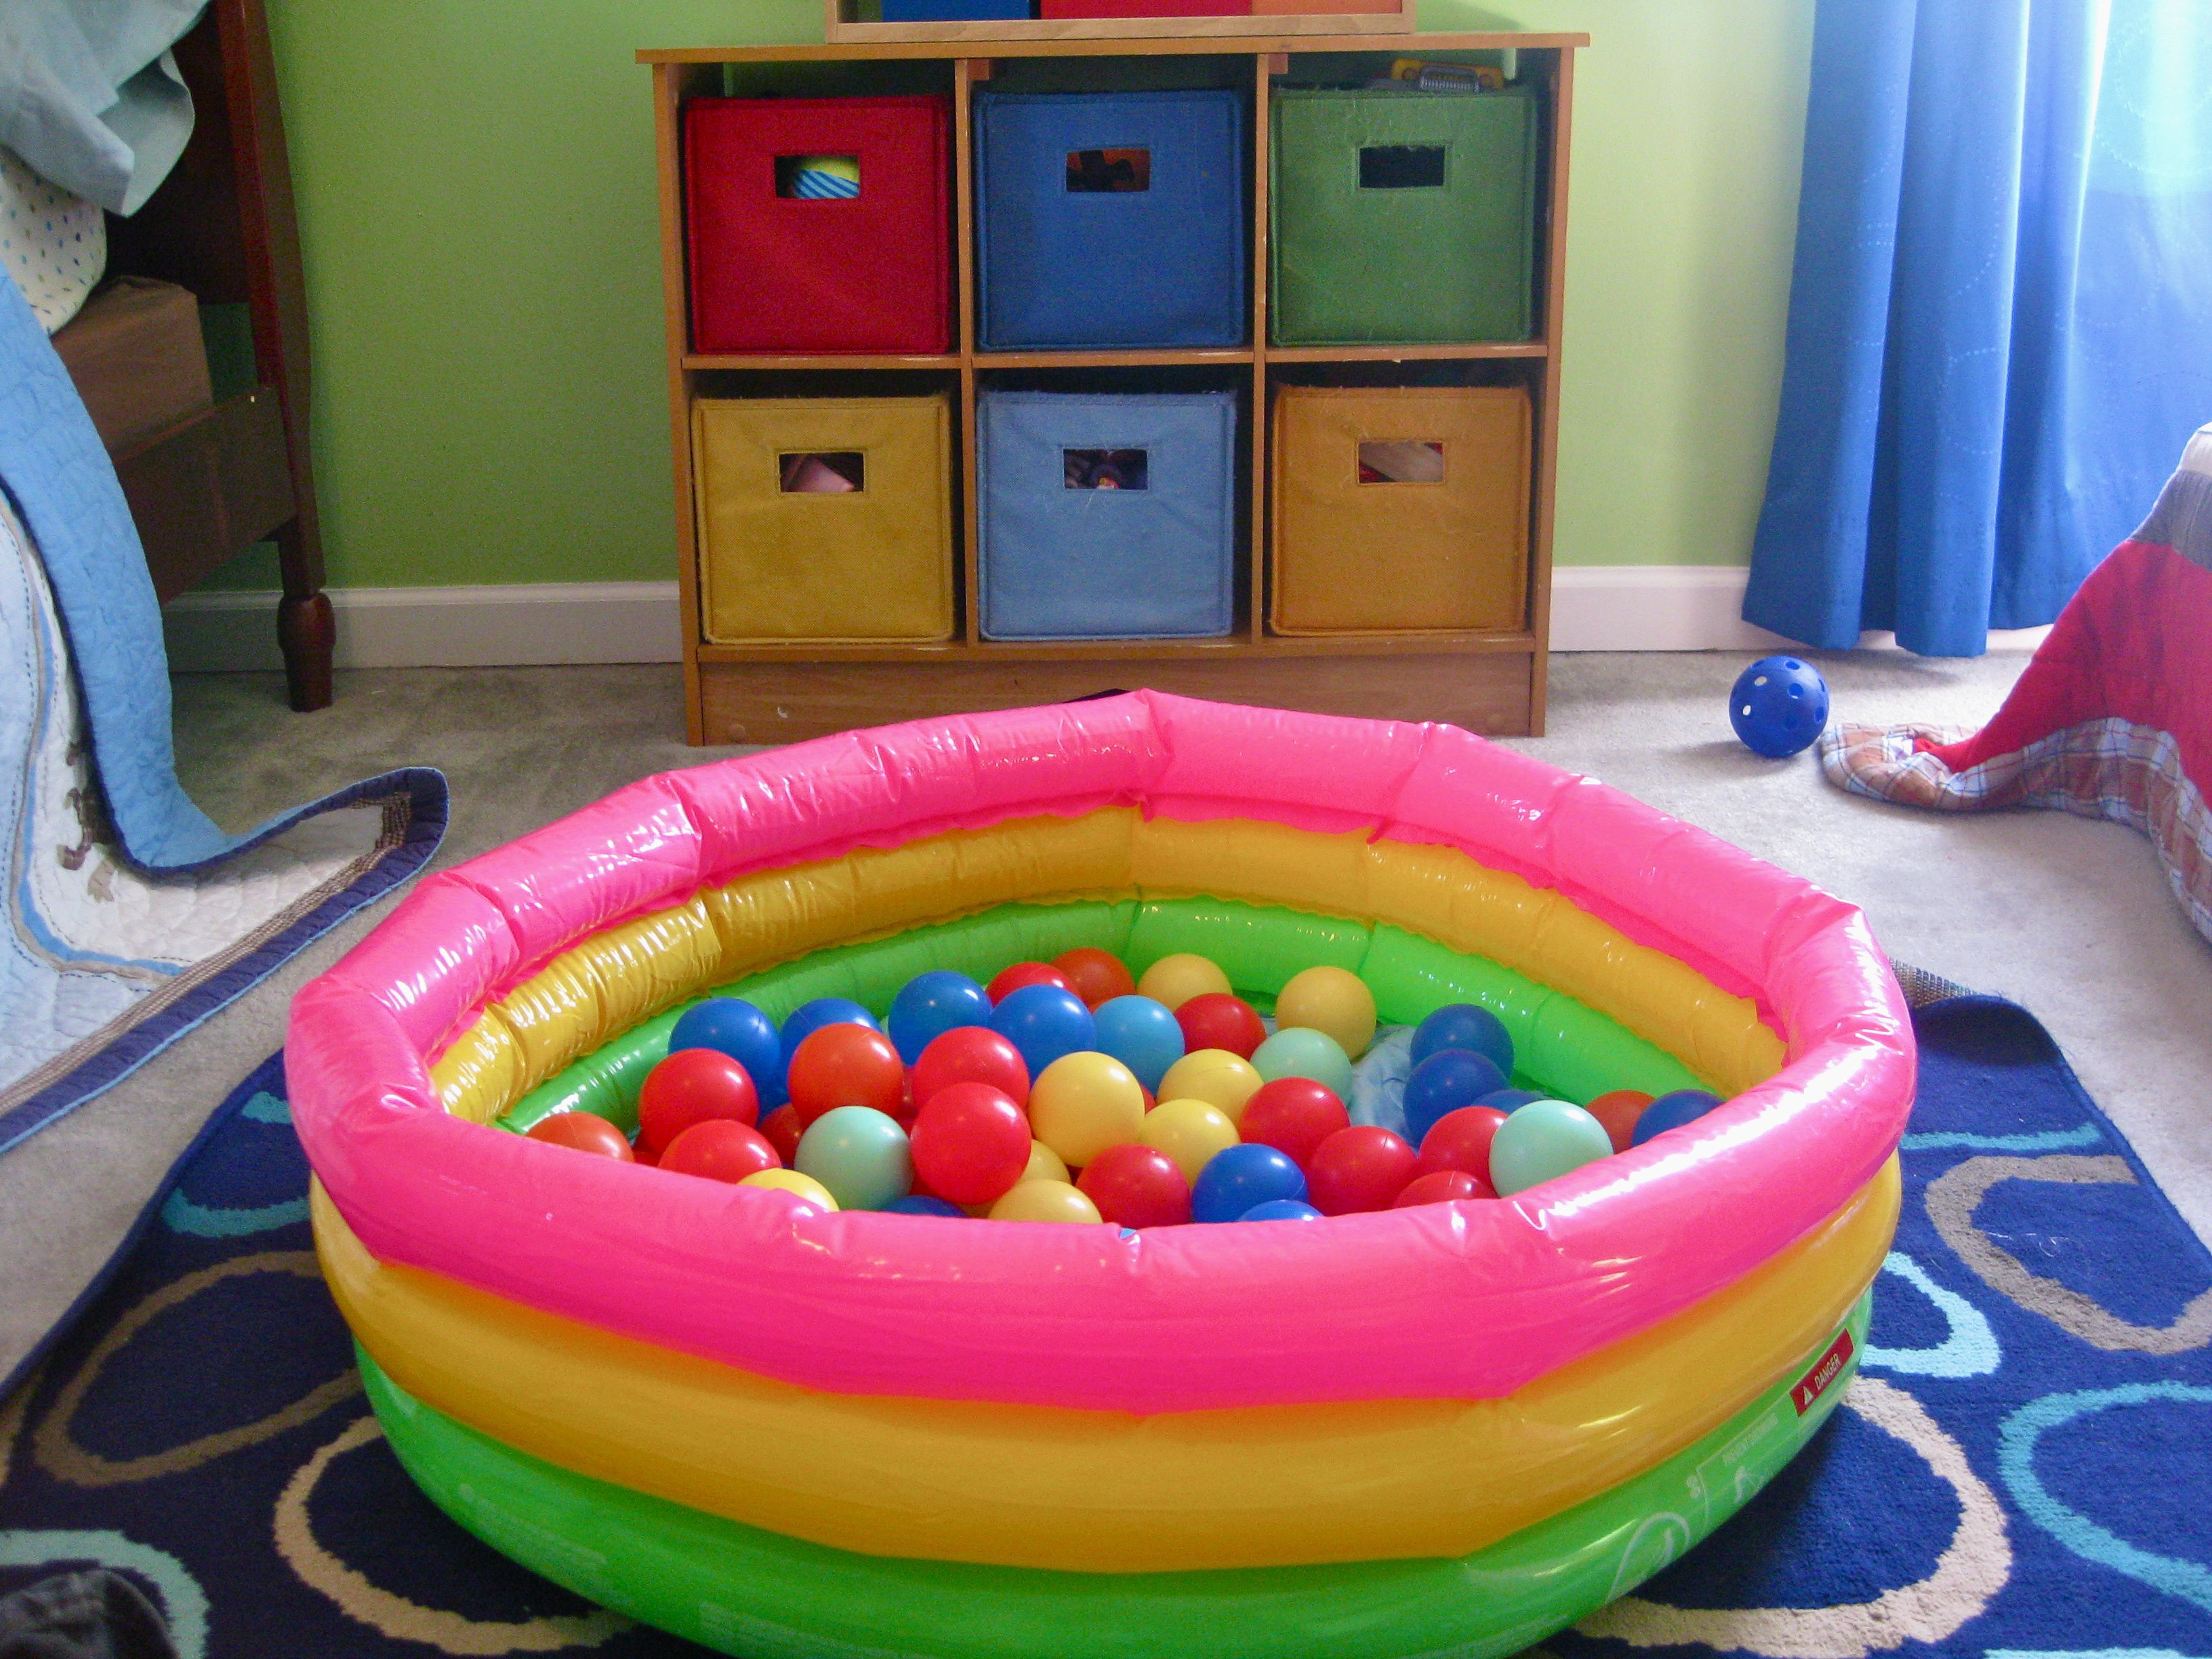 Kiddie Pool Ball Pitsounds Fun For A Two To Three Year Old Birthday Party